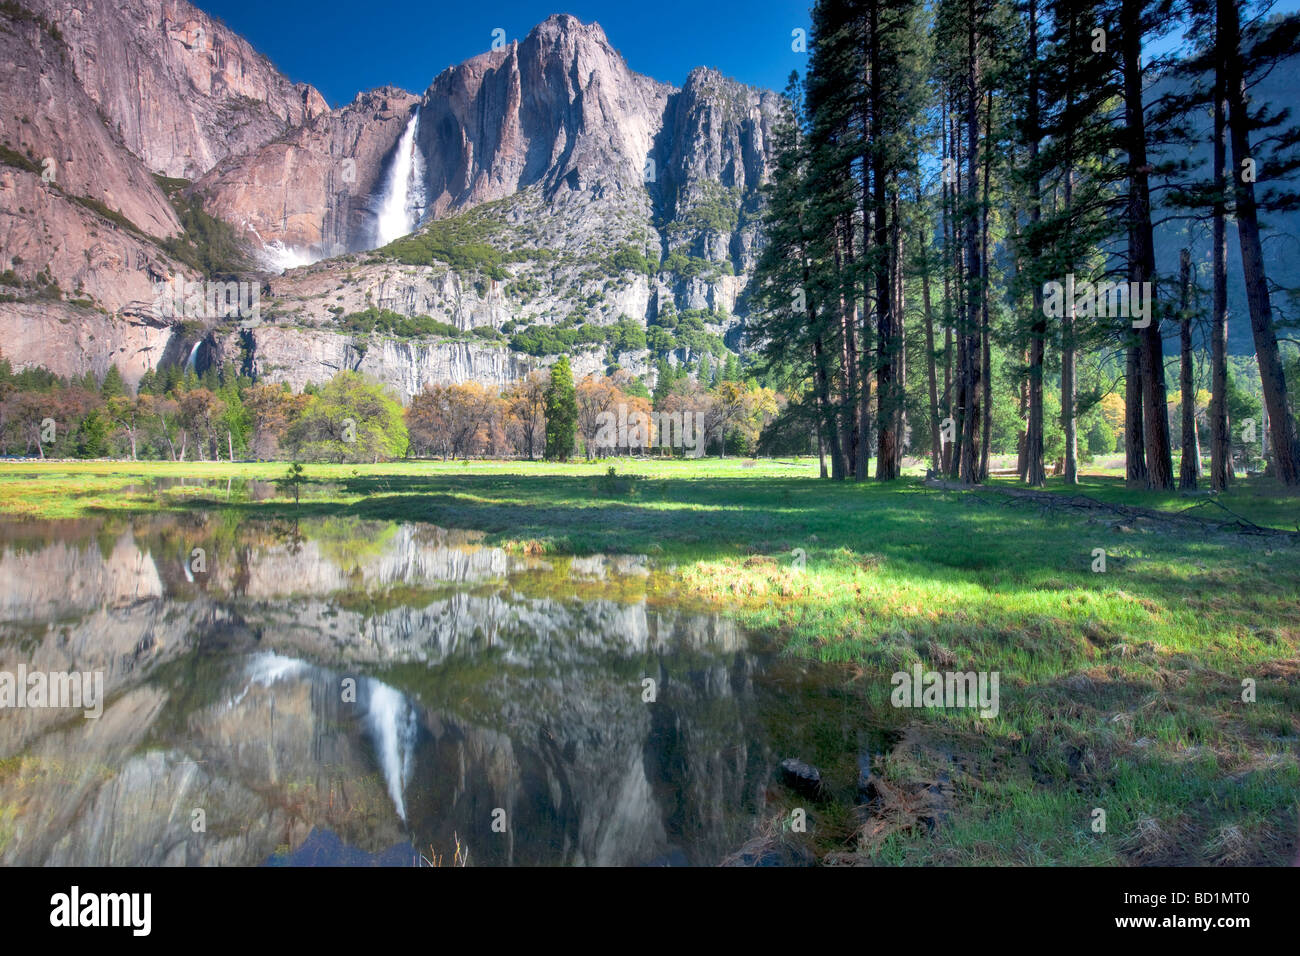 Yosemite Falls reflected in pool of water Yosemite National Park California - Stock Image